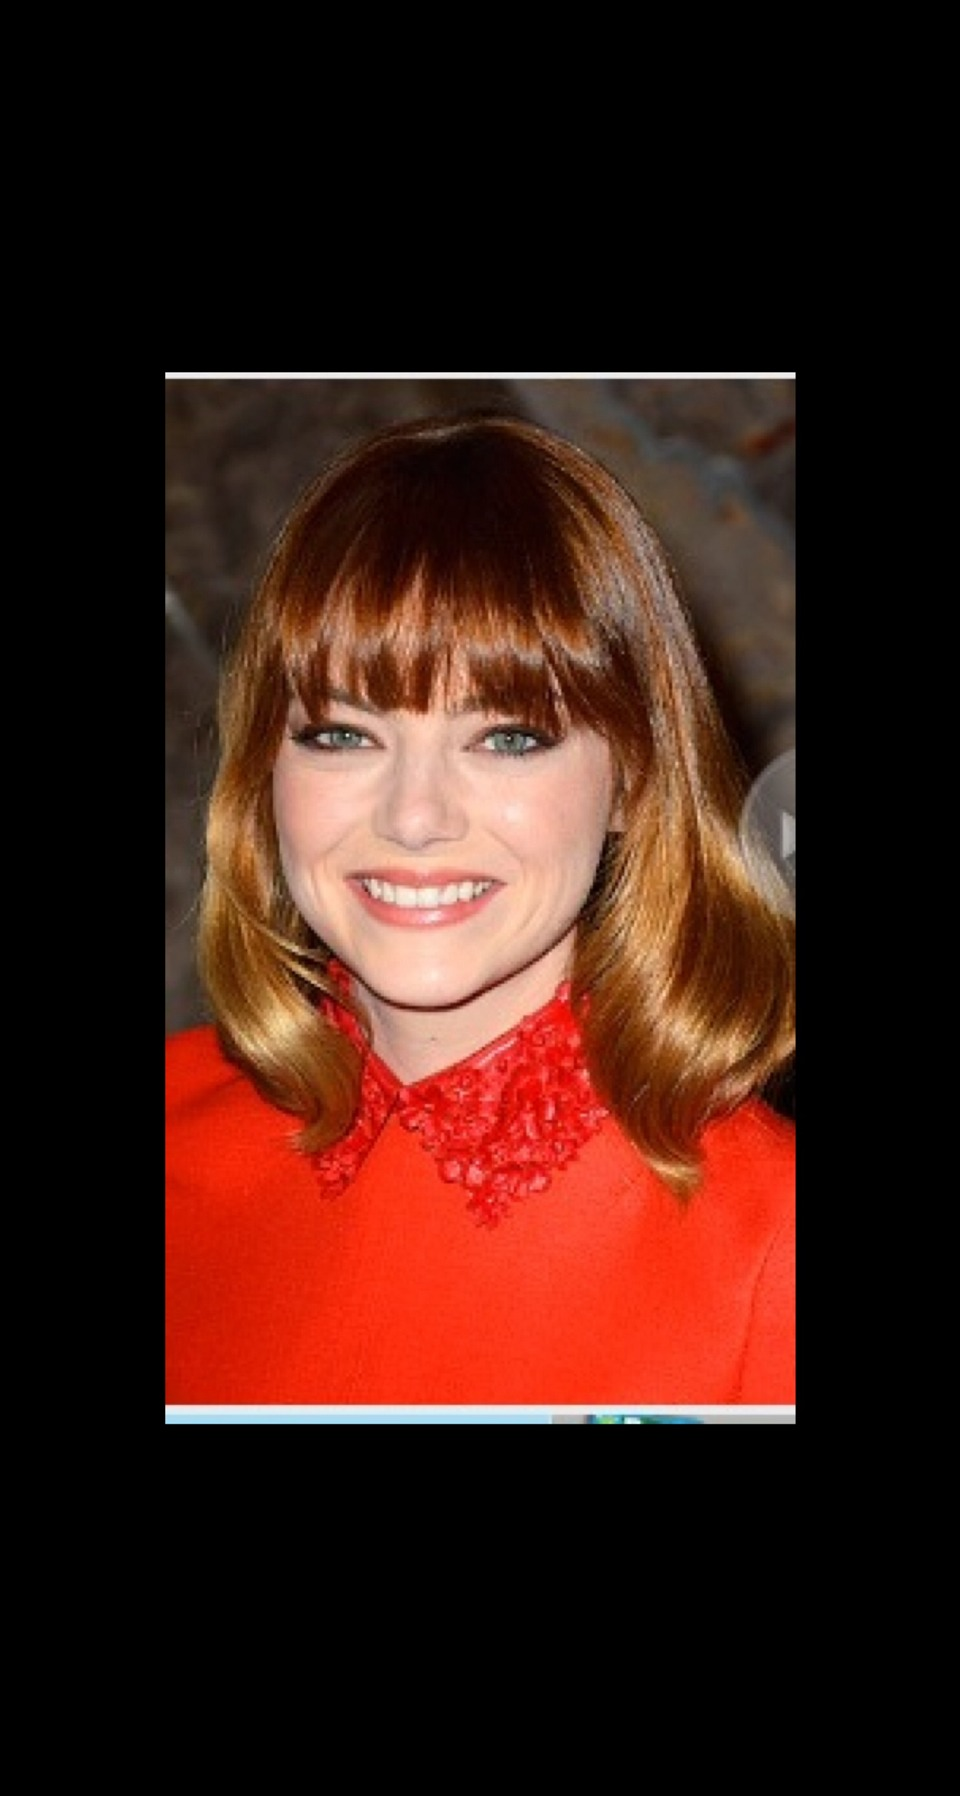 EYELASH-SKIMMING BANGS It used to be that we saw this style a few months after women cut their fringe (it was the dreaded growing-out phase), but lately we've been noticing stars like Catherine Zeta-Jones and Emma Stone opting for this '70s-inspired length right off the bat.